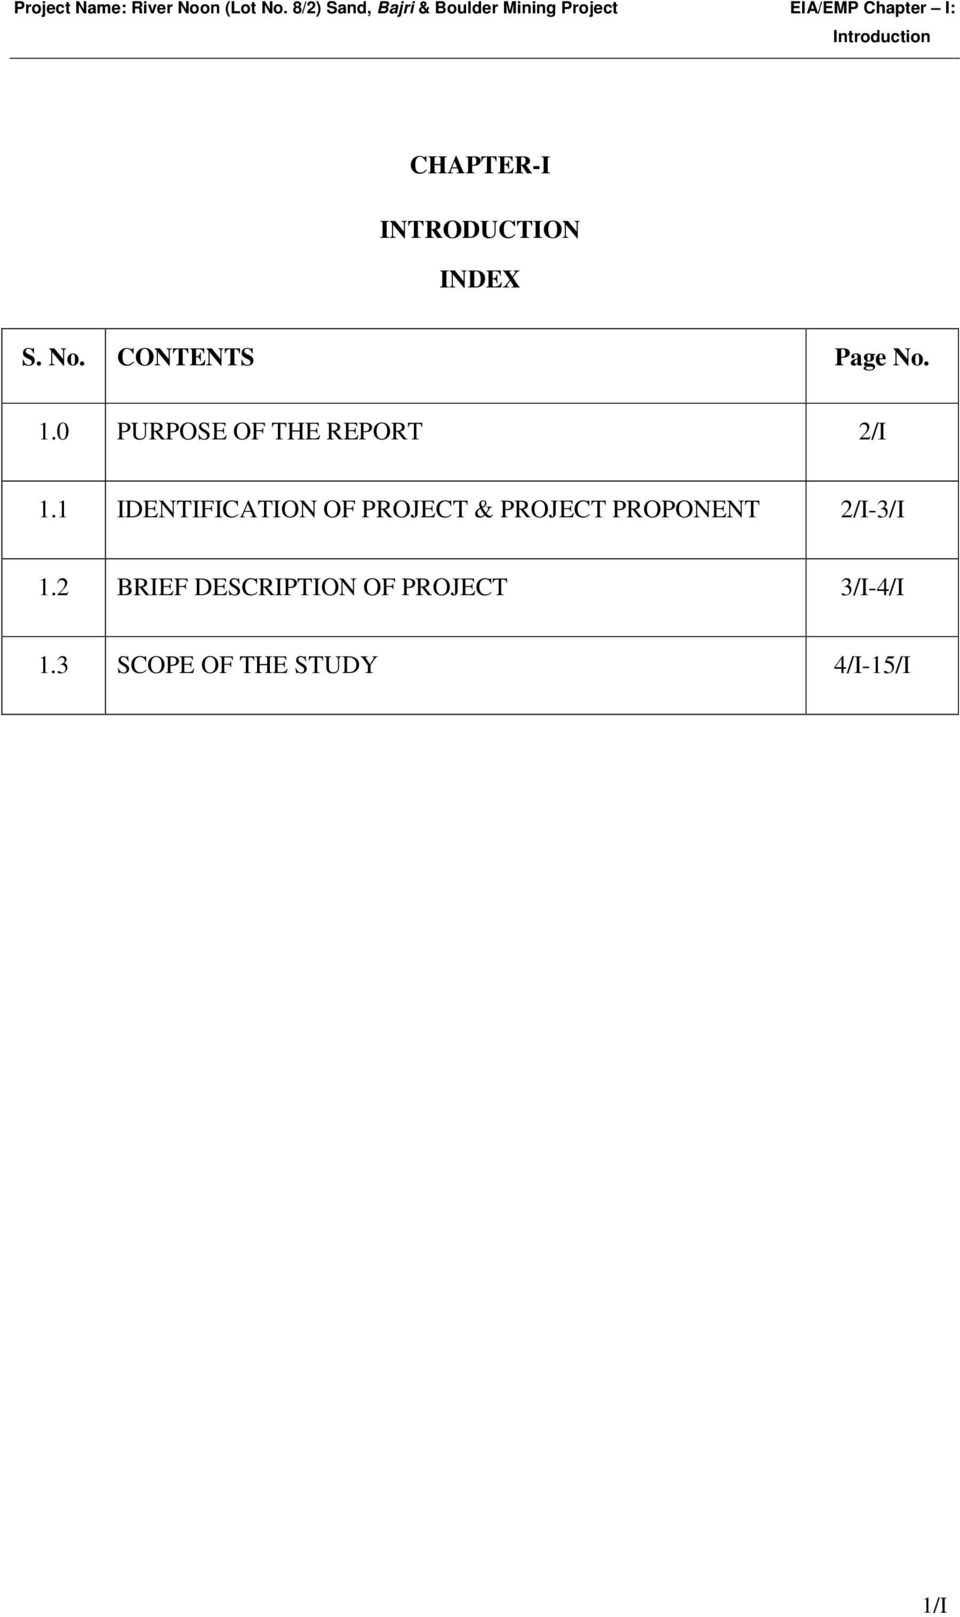 CHAPTER-I INTRODUCTION INDEX S. No. CONTENTS Page No. 1.